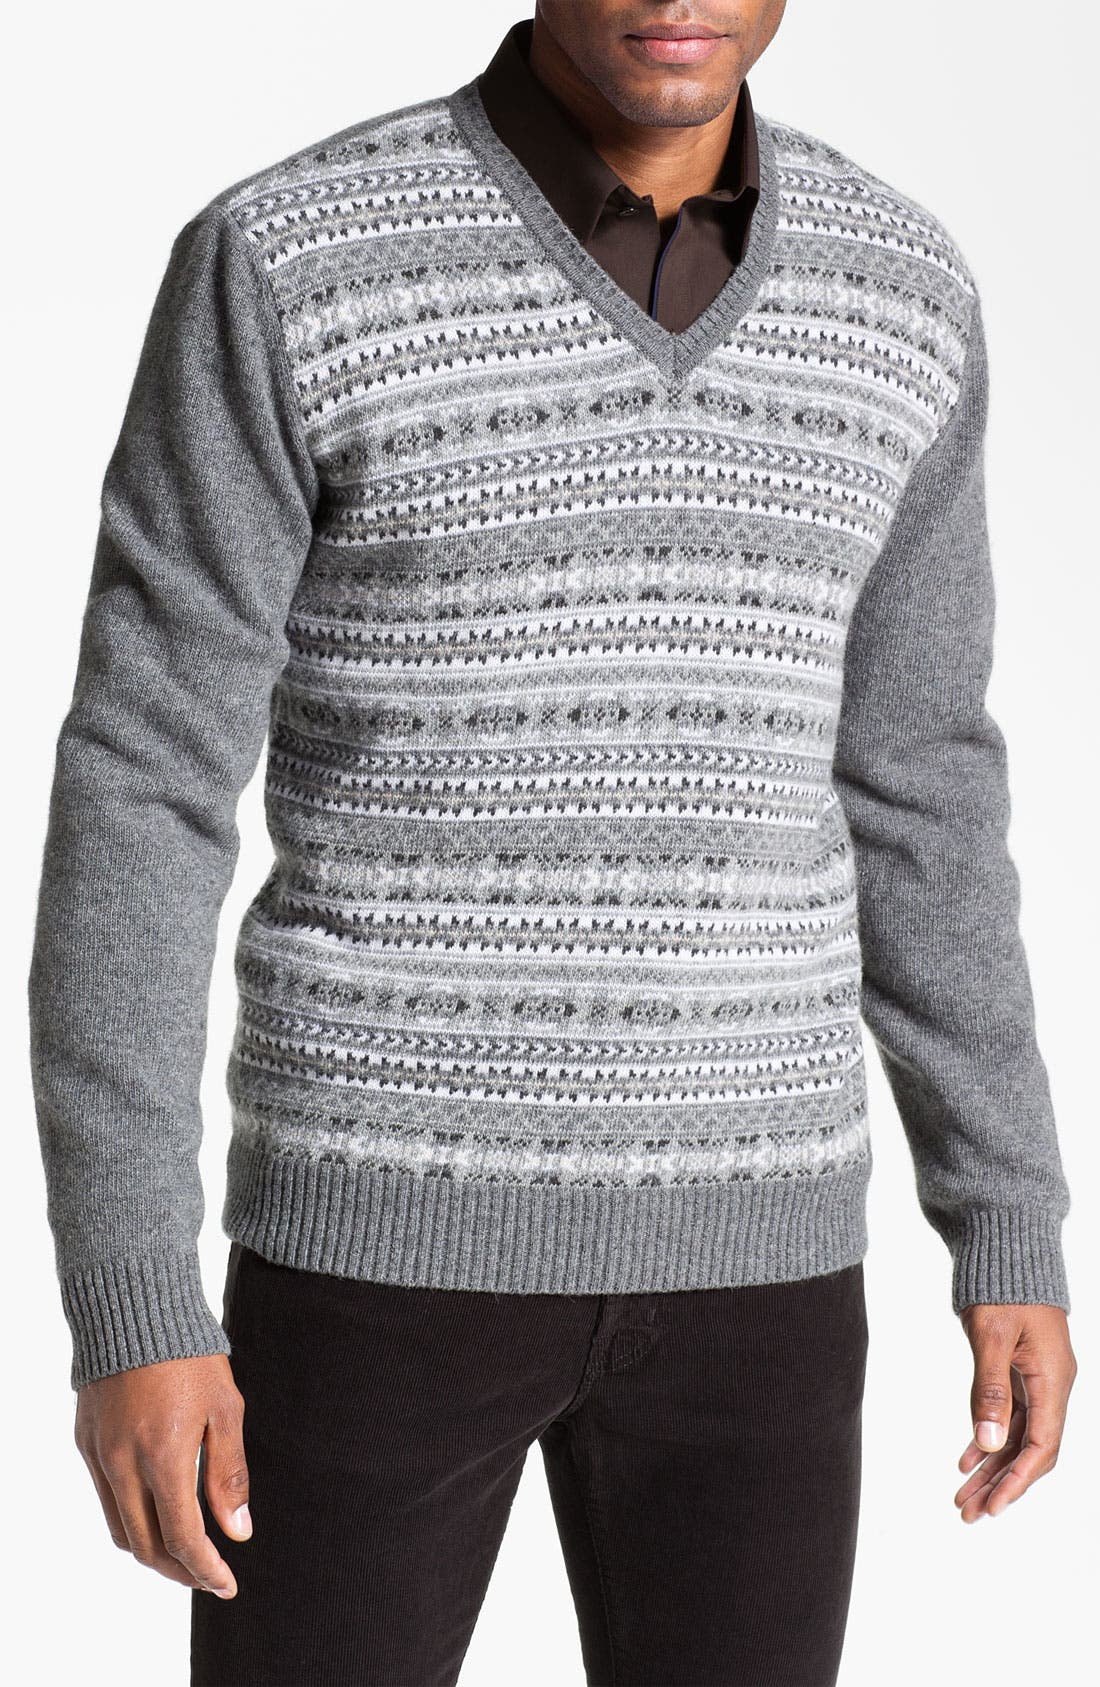 Main Image - Fiesole Wool Blend V-Neck Sweater